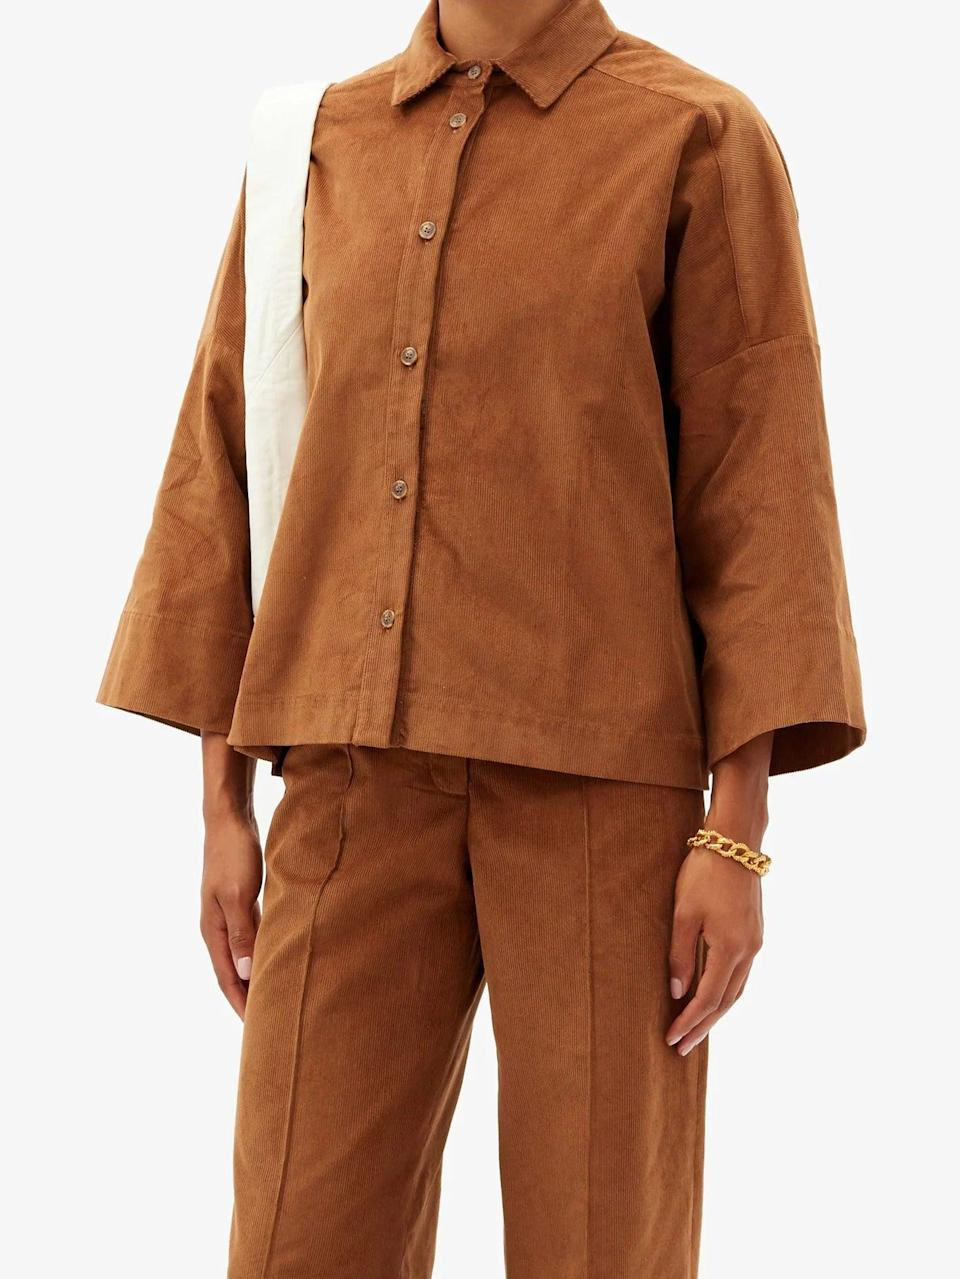 """<br><br><strong>Three Graces London</strong> Sacha Cotton Corduroy Shirt, $, available at <a href=""""https://www.matchesfashion.com/products/Three-Graces-London-Sacha-cotton-corduroy-shirt-1366609"""" rel=""""nofollow noopener"""" target=""""_blank"""" data-ylk=""""slk:MatchesFashion.com"""" class=""""link rapid-noclick-resp"""">MatchesFashion.com</a>"""